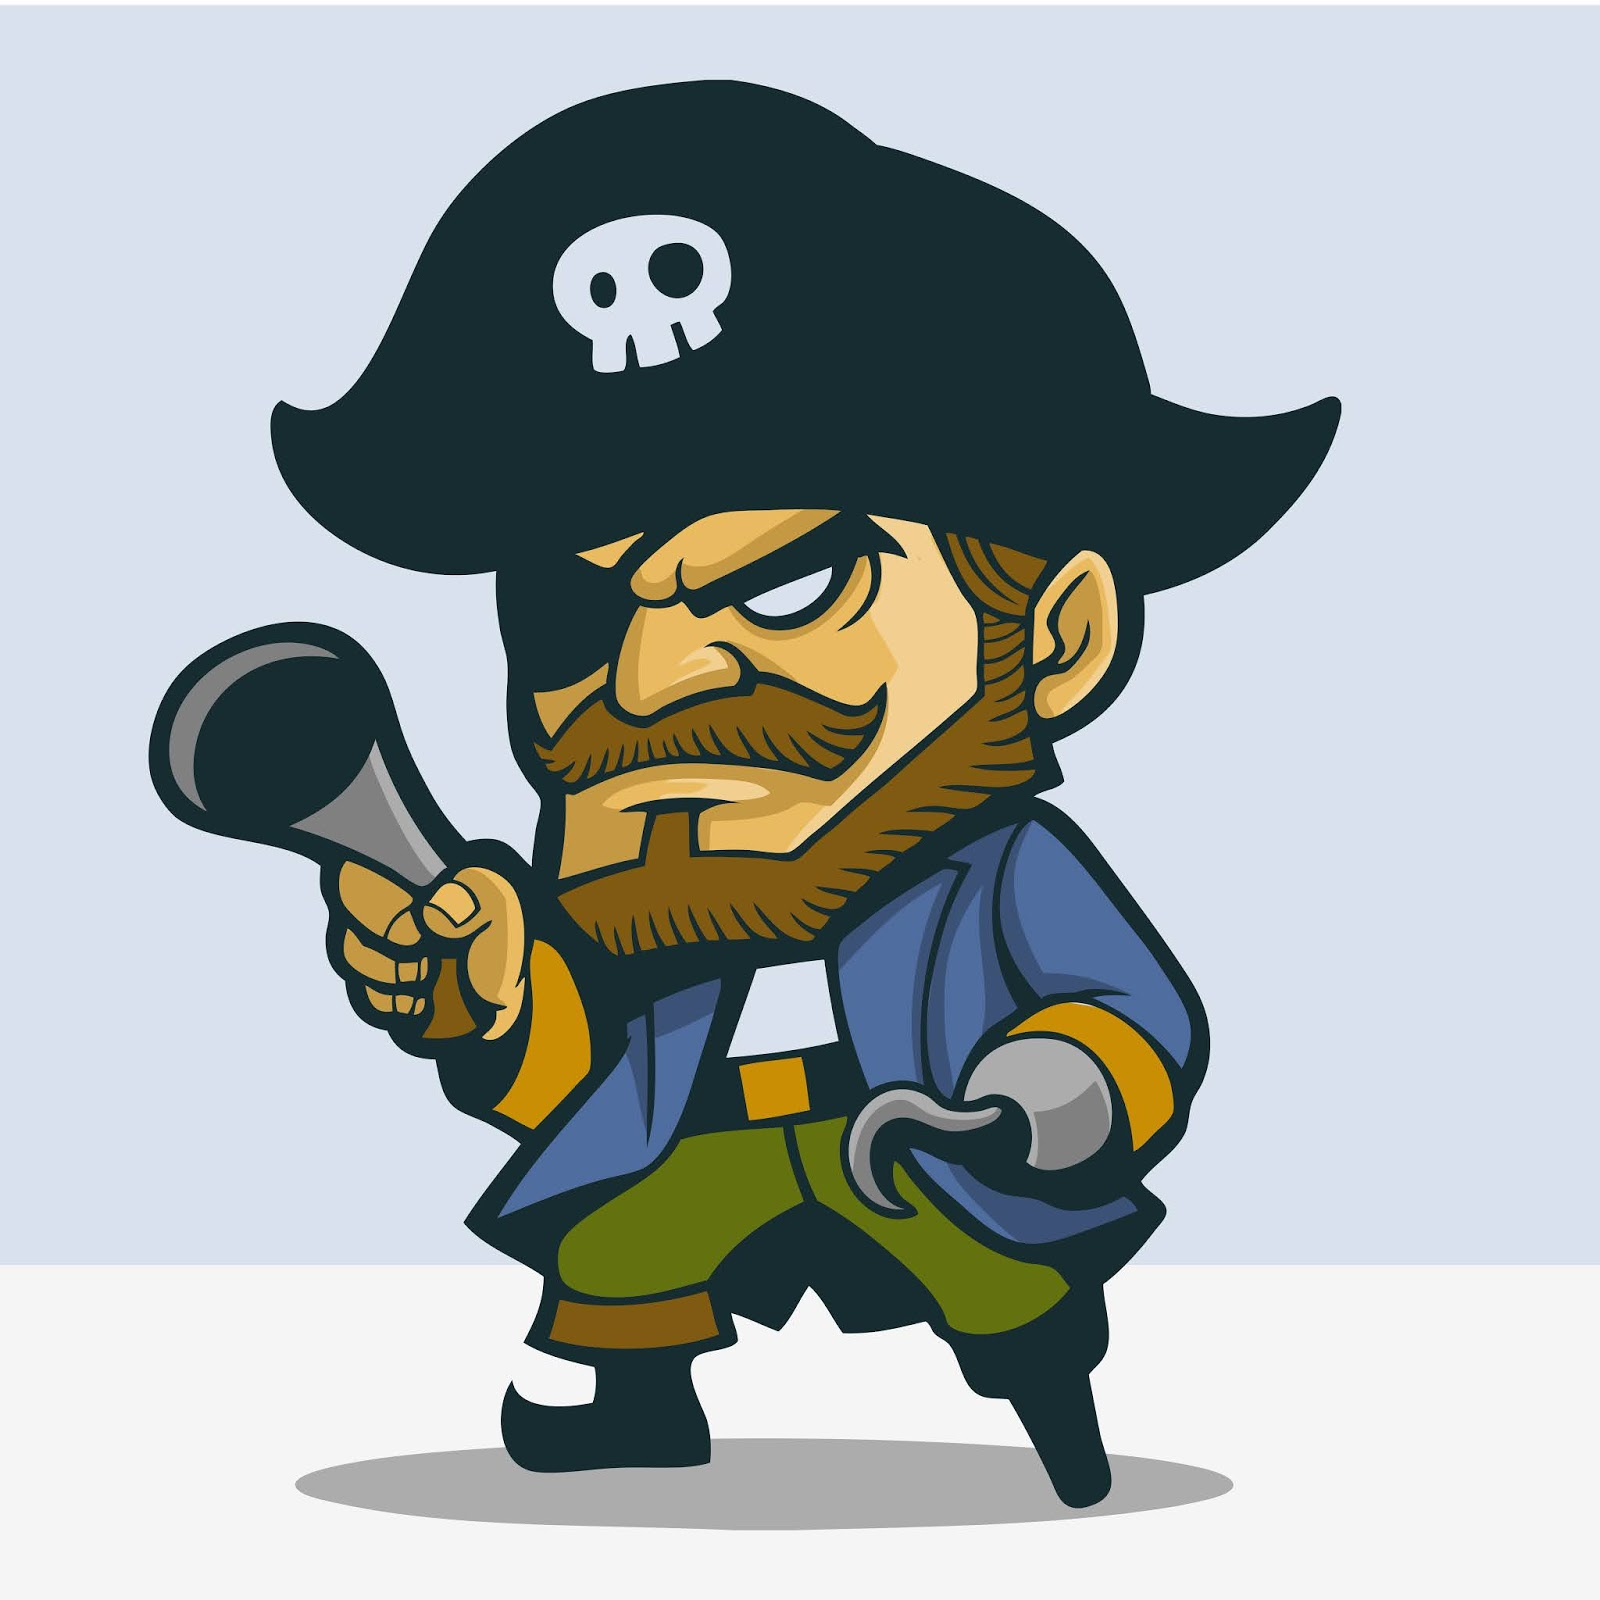 Cute One Legged Pirate Free Download Vector CDR, AI, EPS and PNG Formats